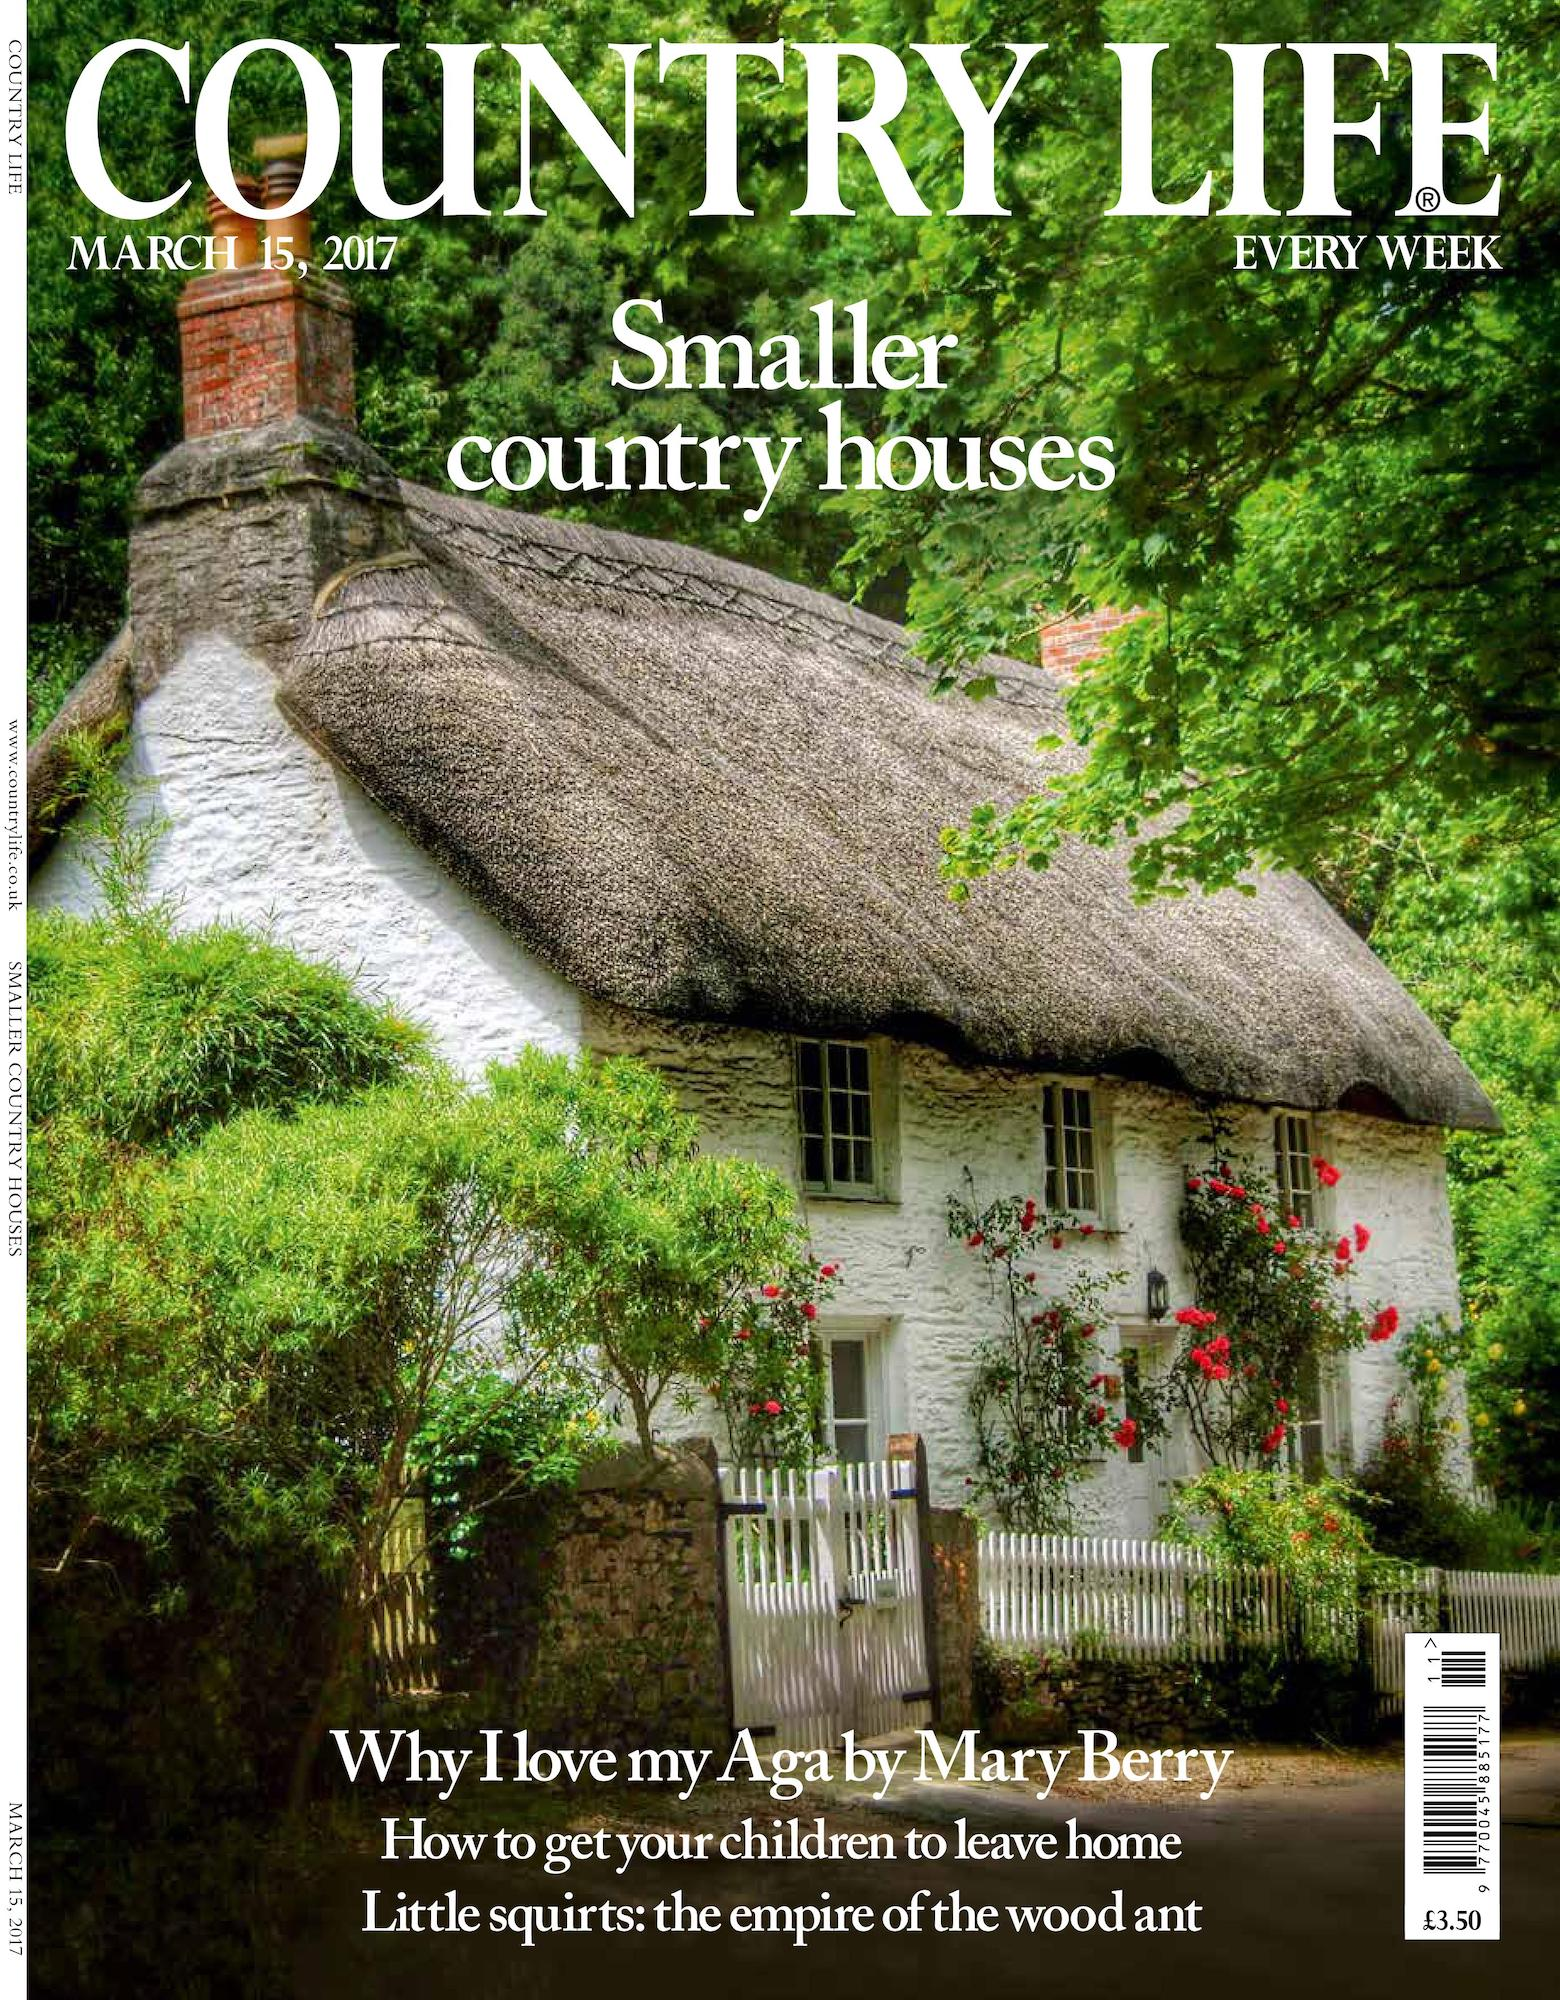 Cover of Country Life magazine March 15 2017 issue